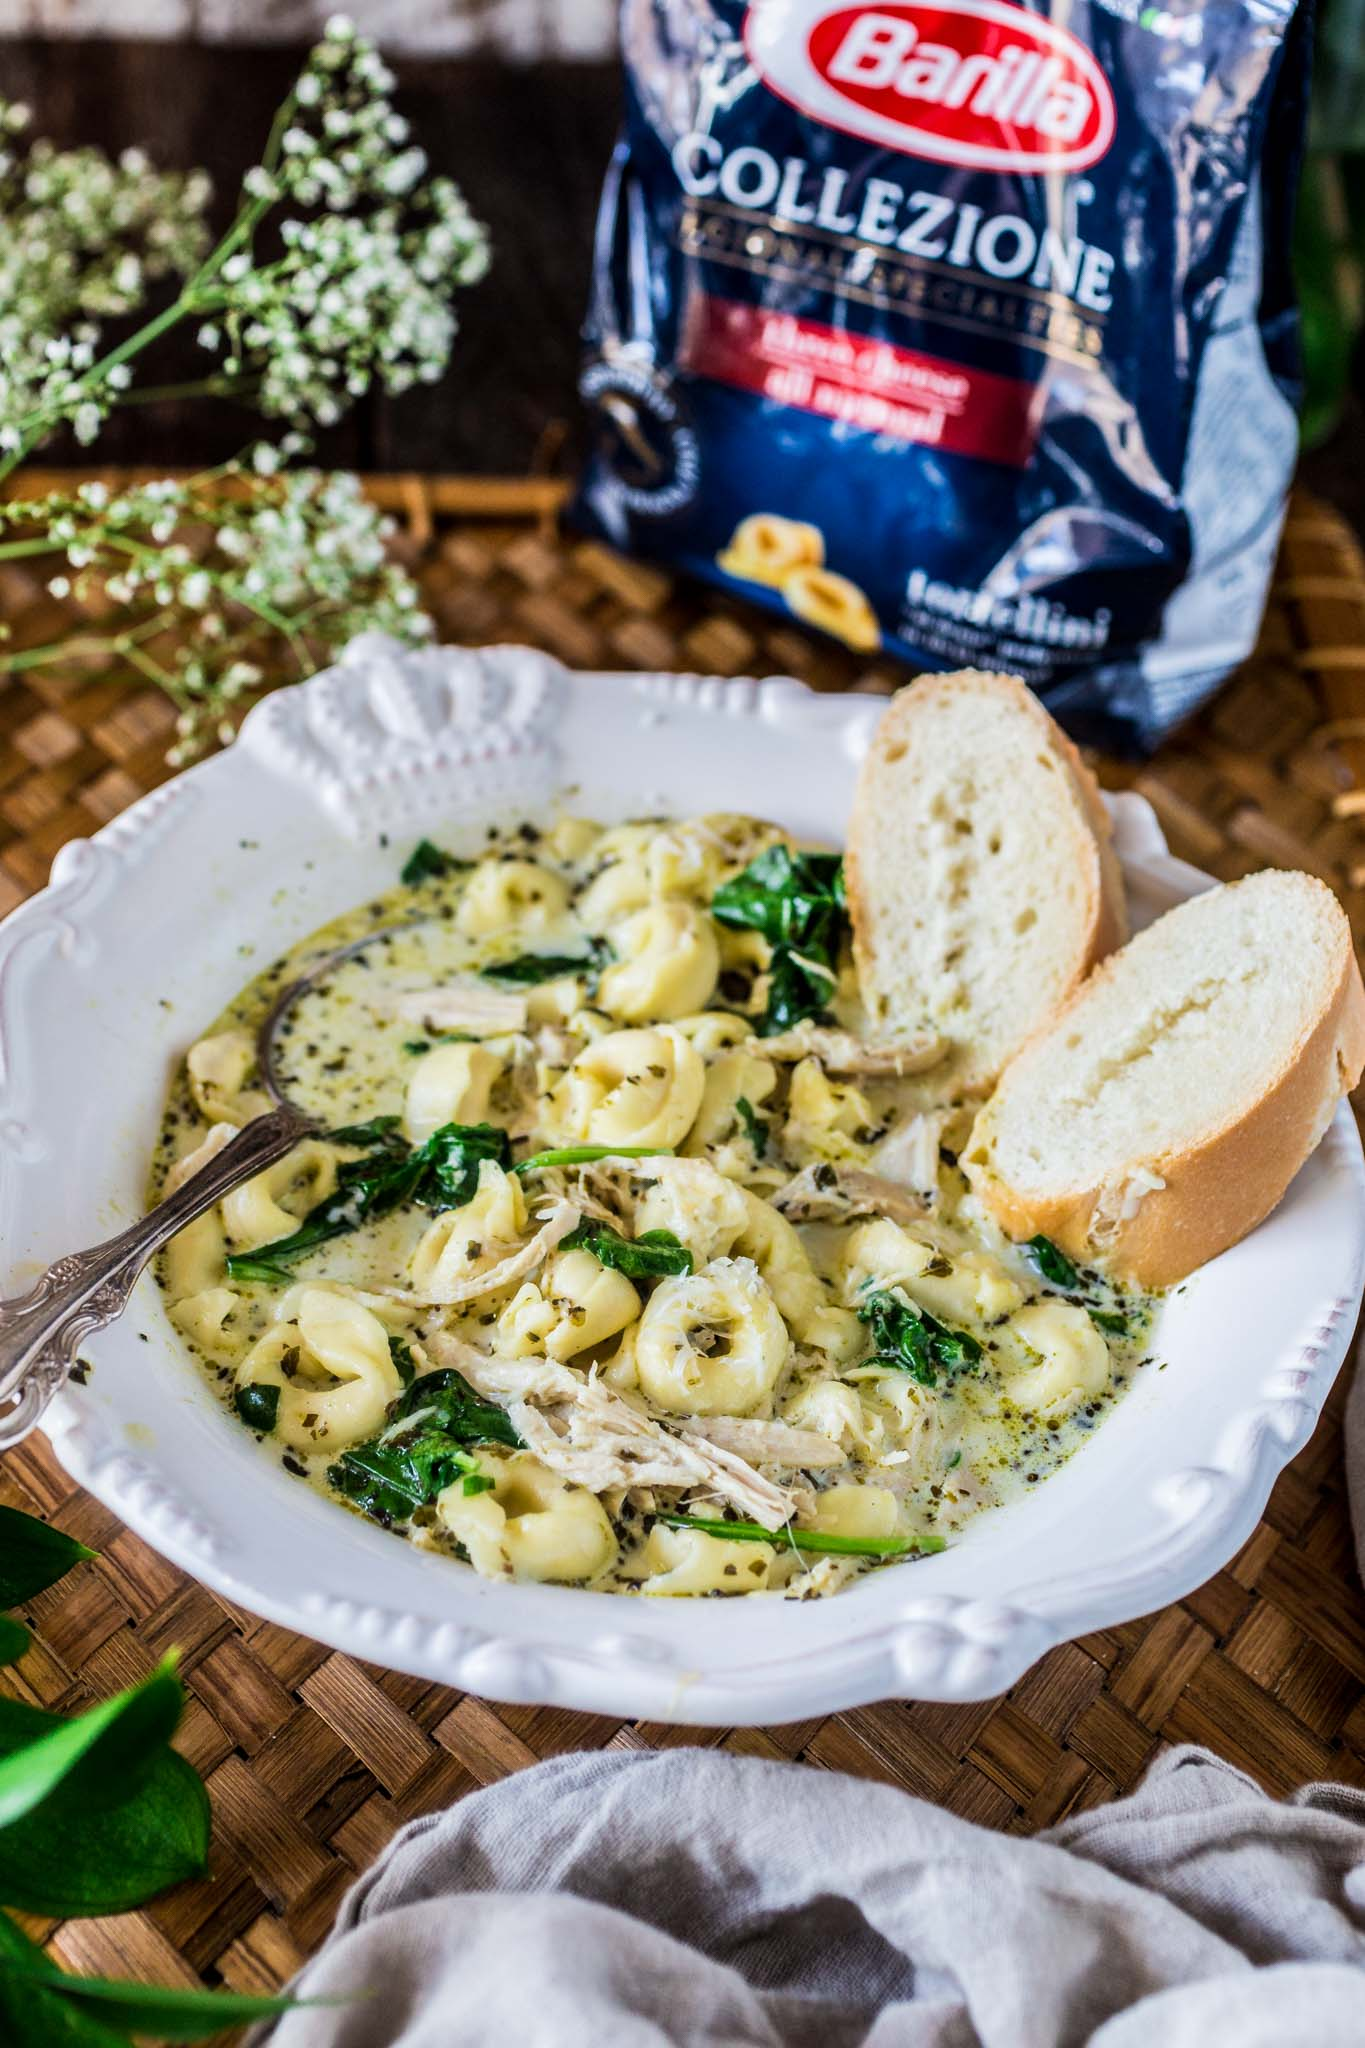 Creamy Chicken Tortellini Soup | www.oliviascuisine.com | You won't believe how easy this Creamy Chicken Tortellini Soup is! Hearty, comforting and made in the slow cooker. It really doesn't get easier than that!